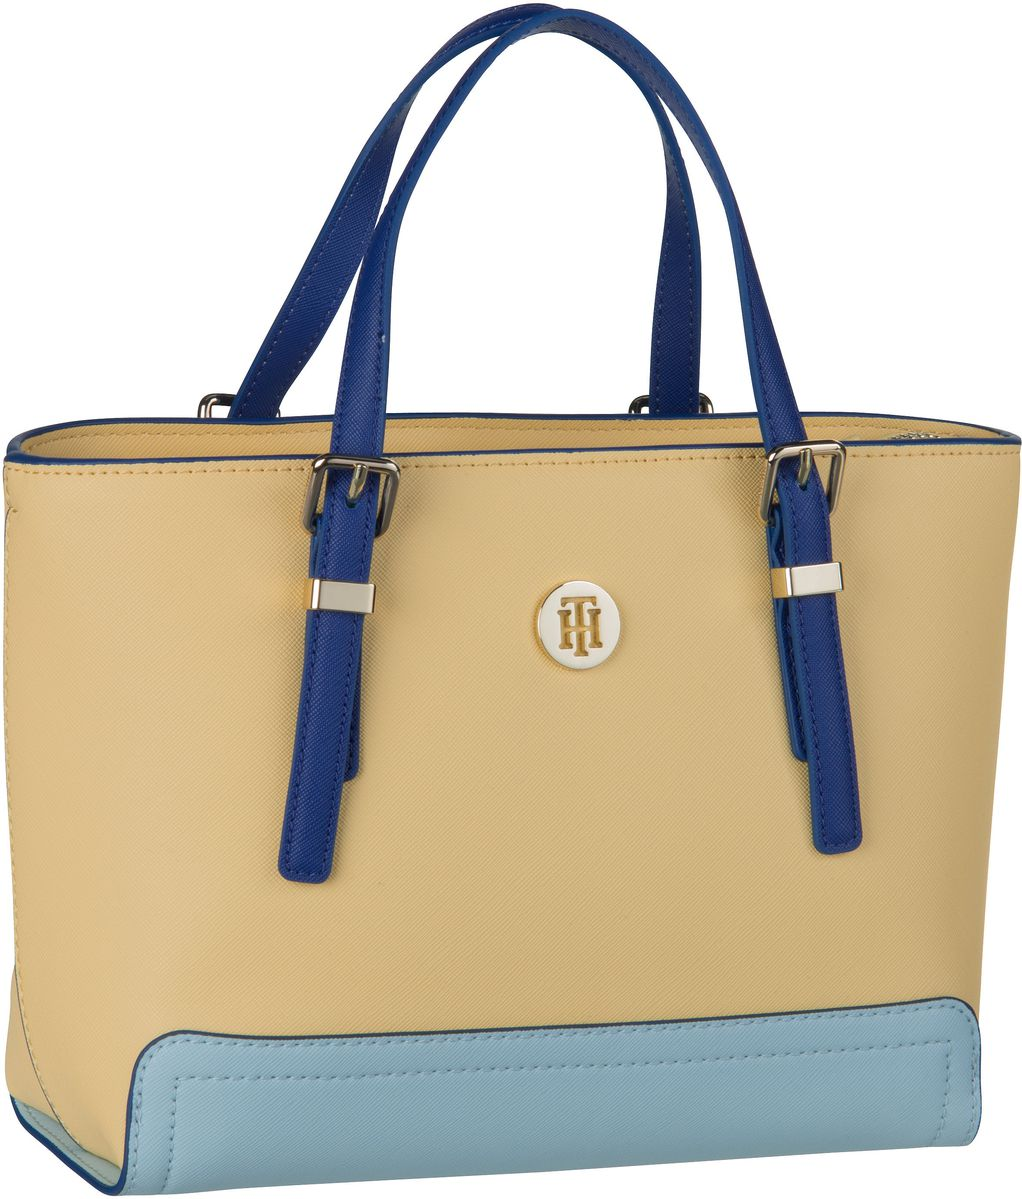 Handtasche Honey Small Tote 6421 Golden Haze/Omphalodes